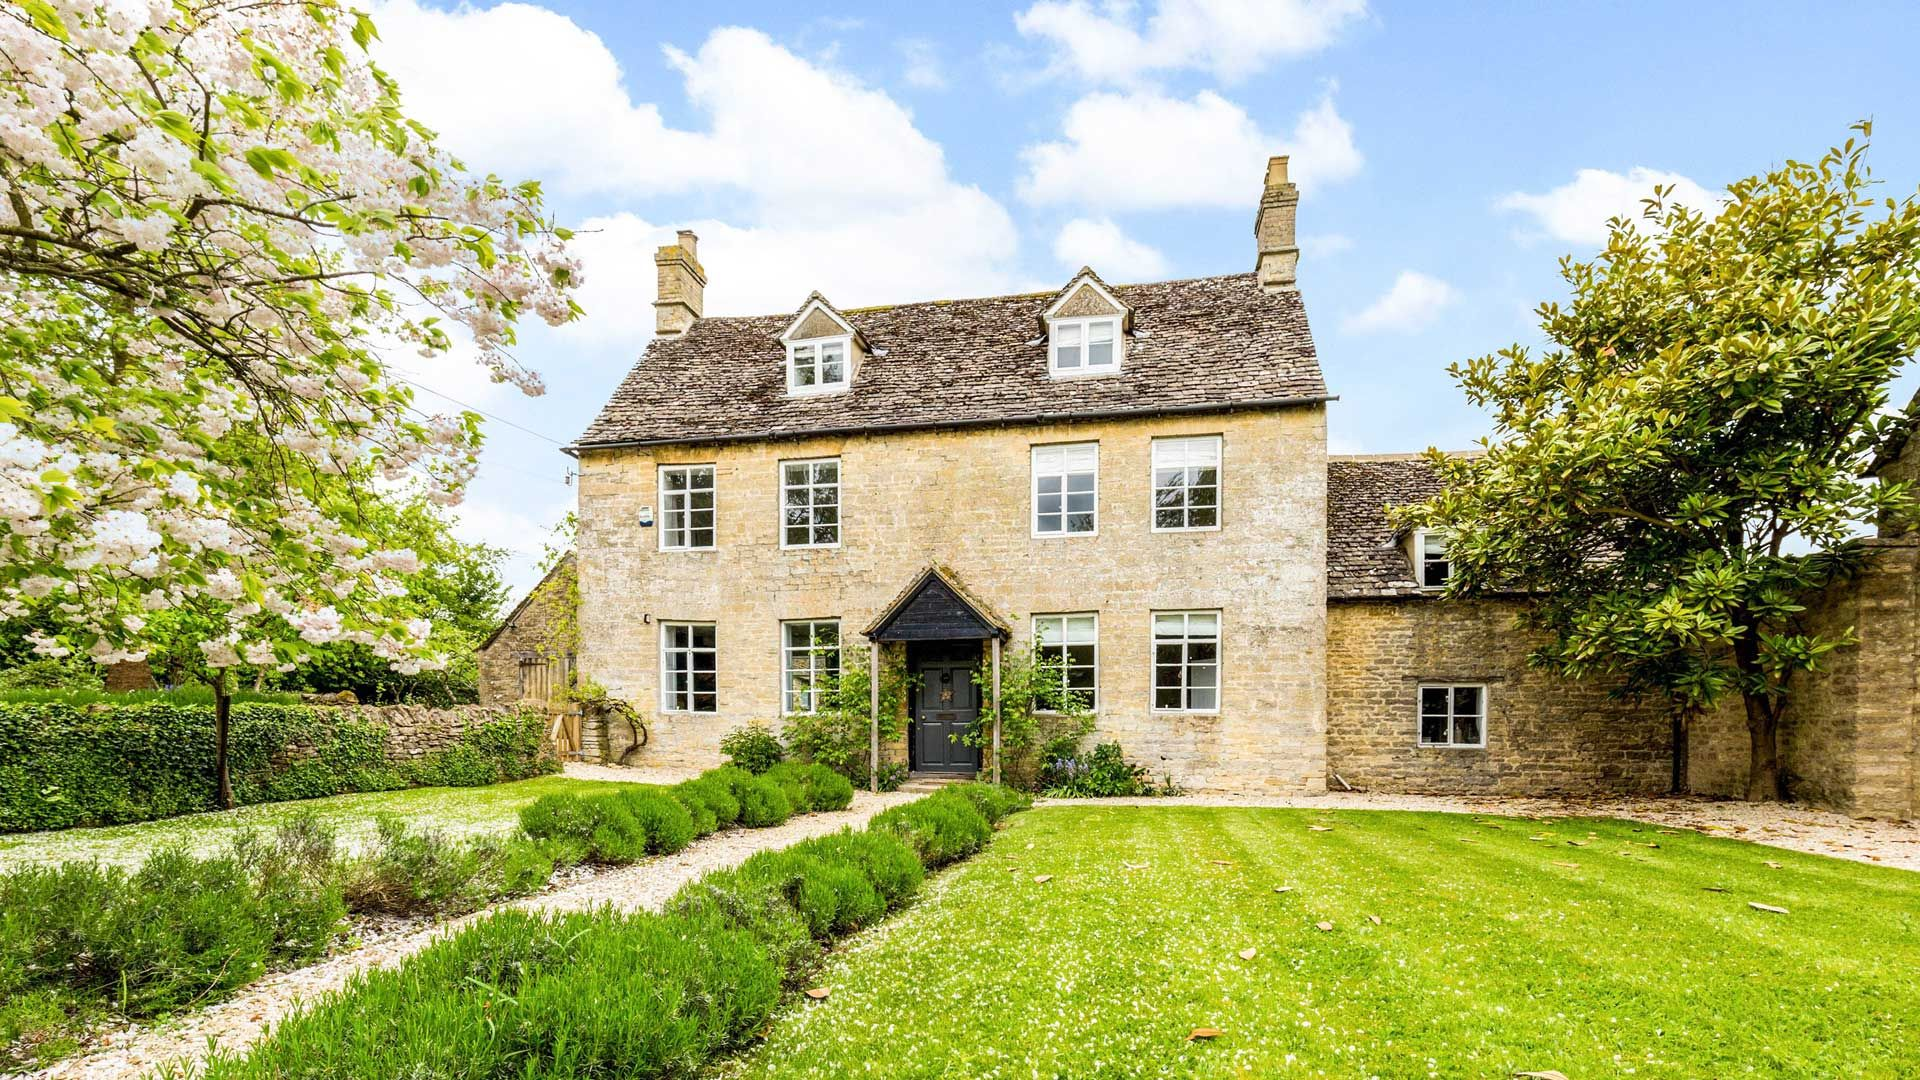 Church Farmhouse - StayCotswold